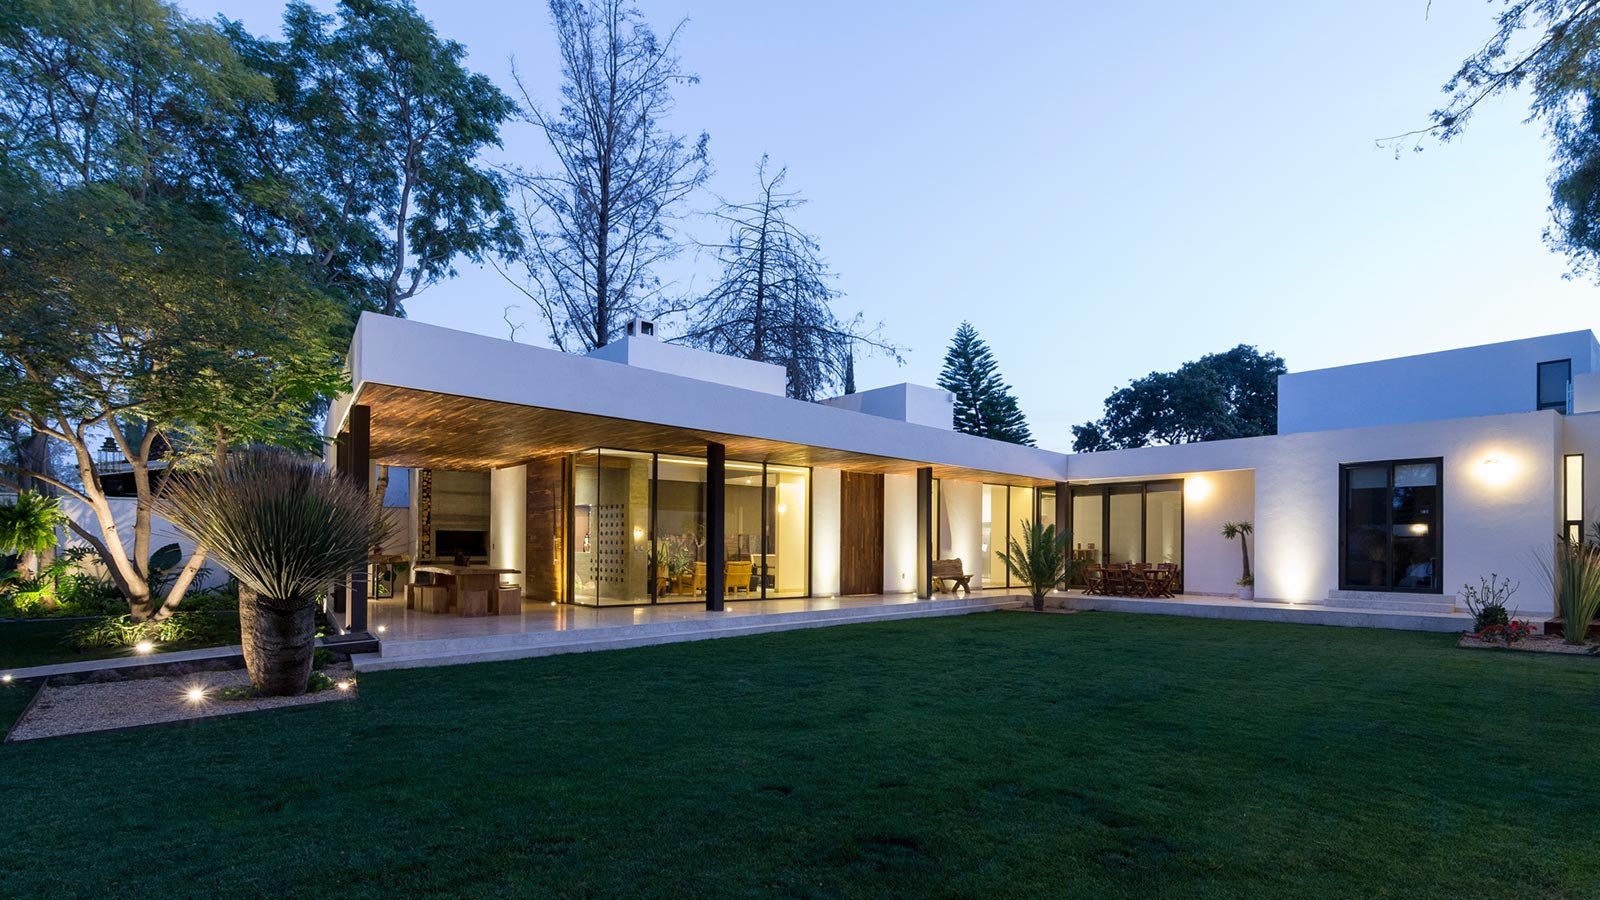 Casa l 1960s mexican house is transformed into an elegant for Casa moderna l